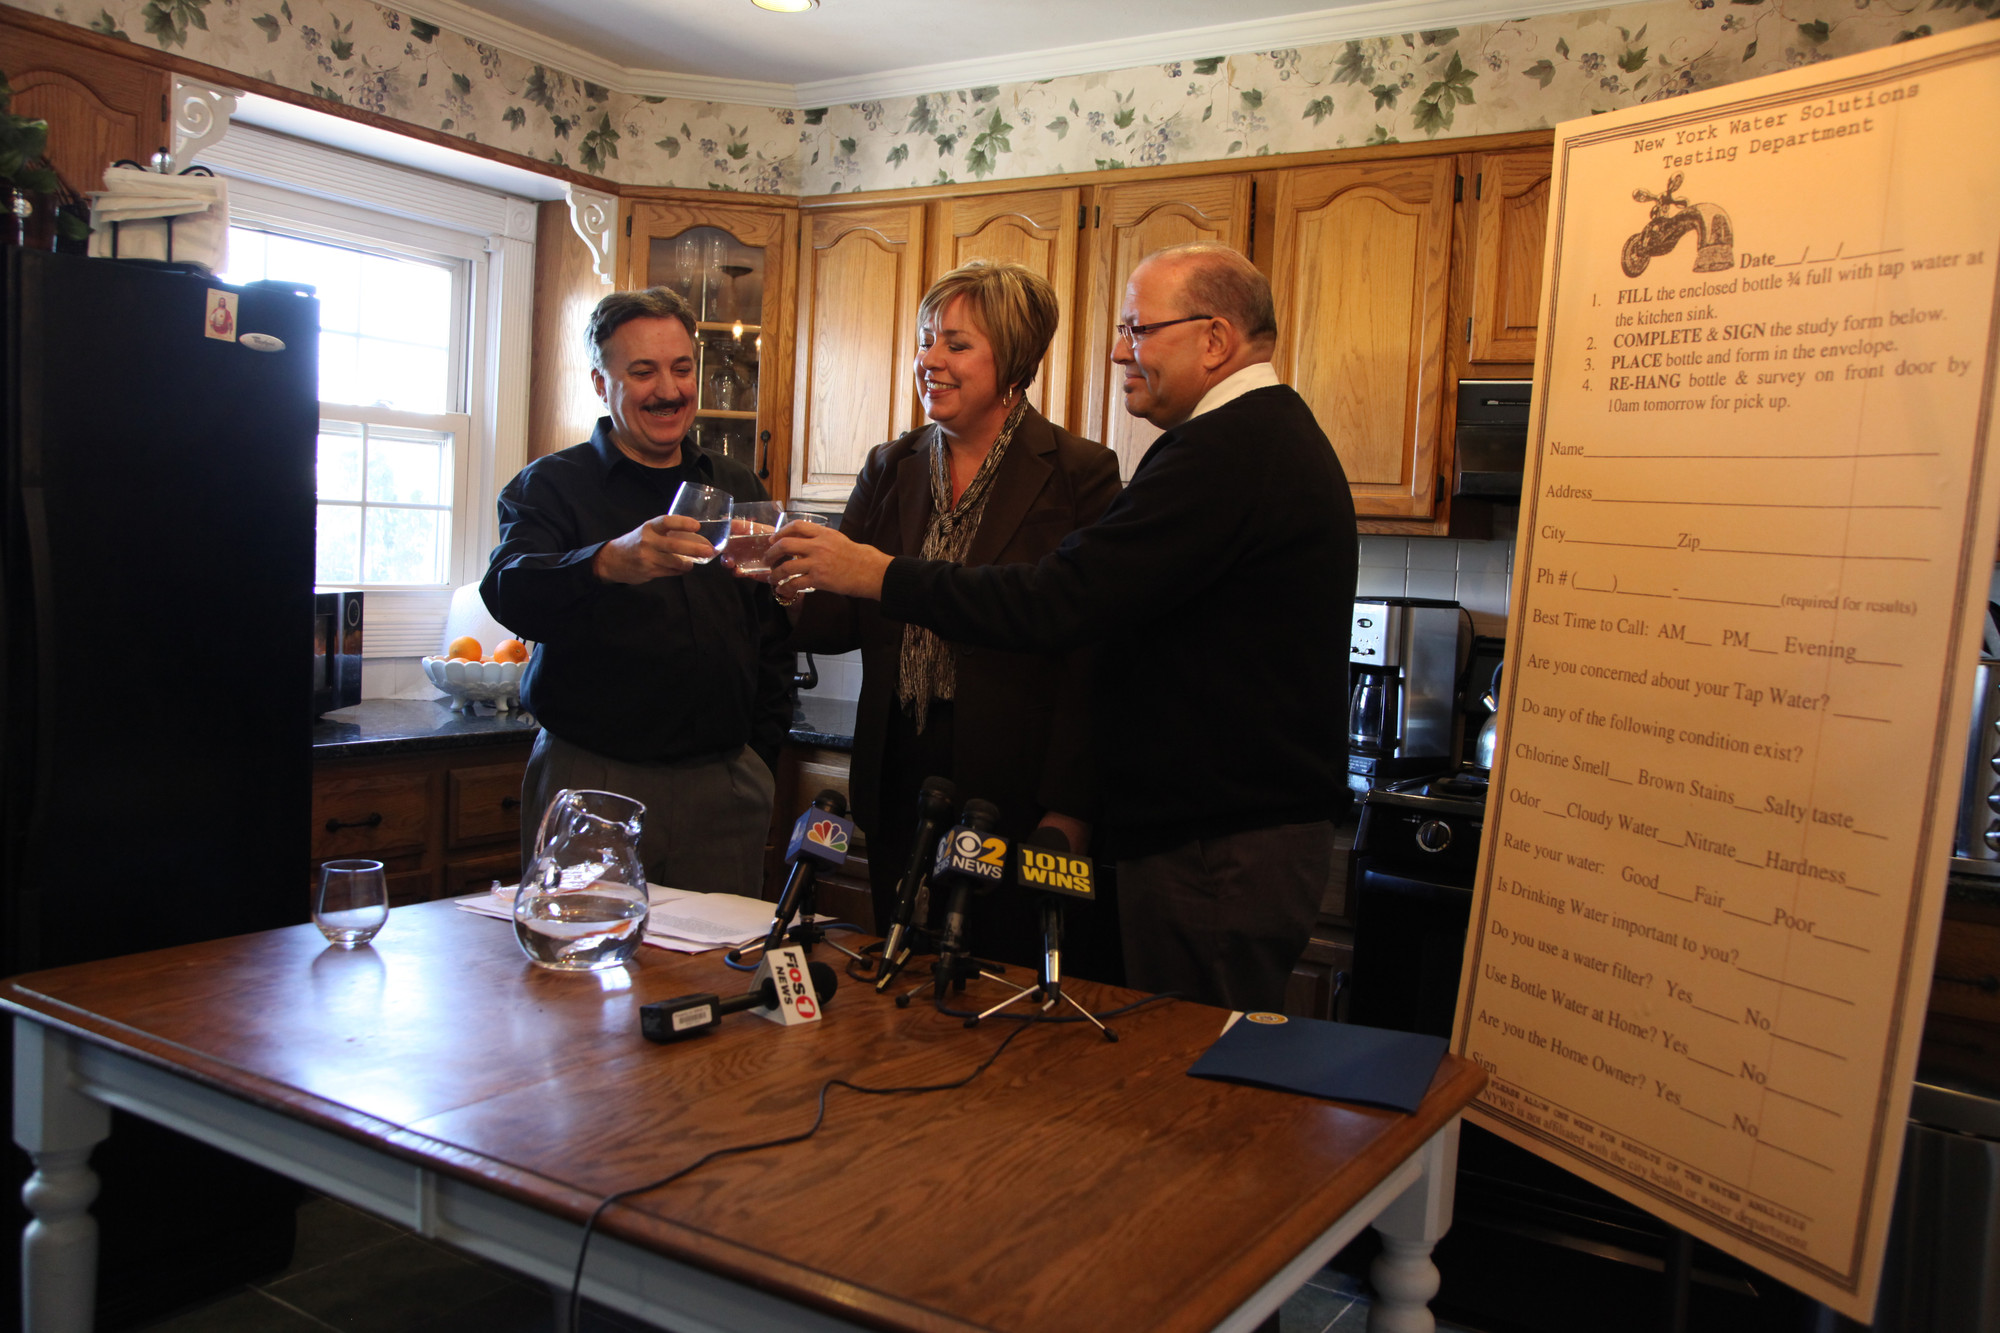 Borrelli's Italian restaurant owner Frank Borrelli, left, had a water toast inside his home with Town of Hempstead Supervisor Kate Murray and Councilman Gary Hudes to signify that the town's drinking water is safe.